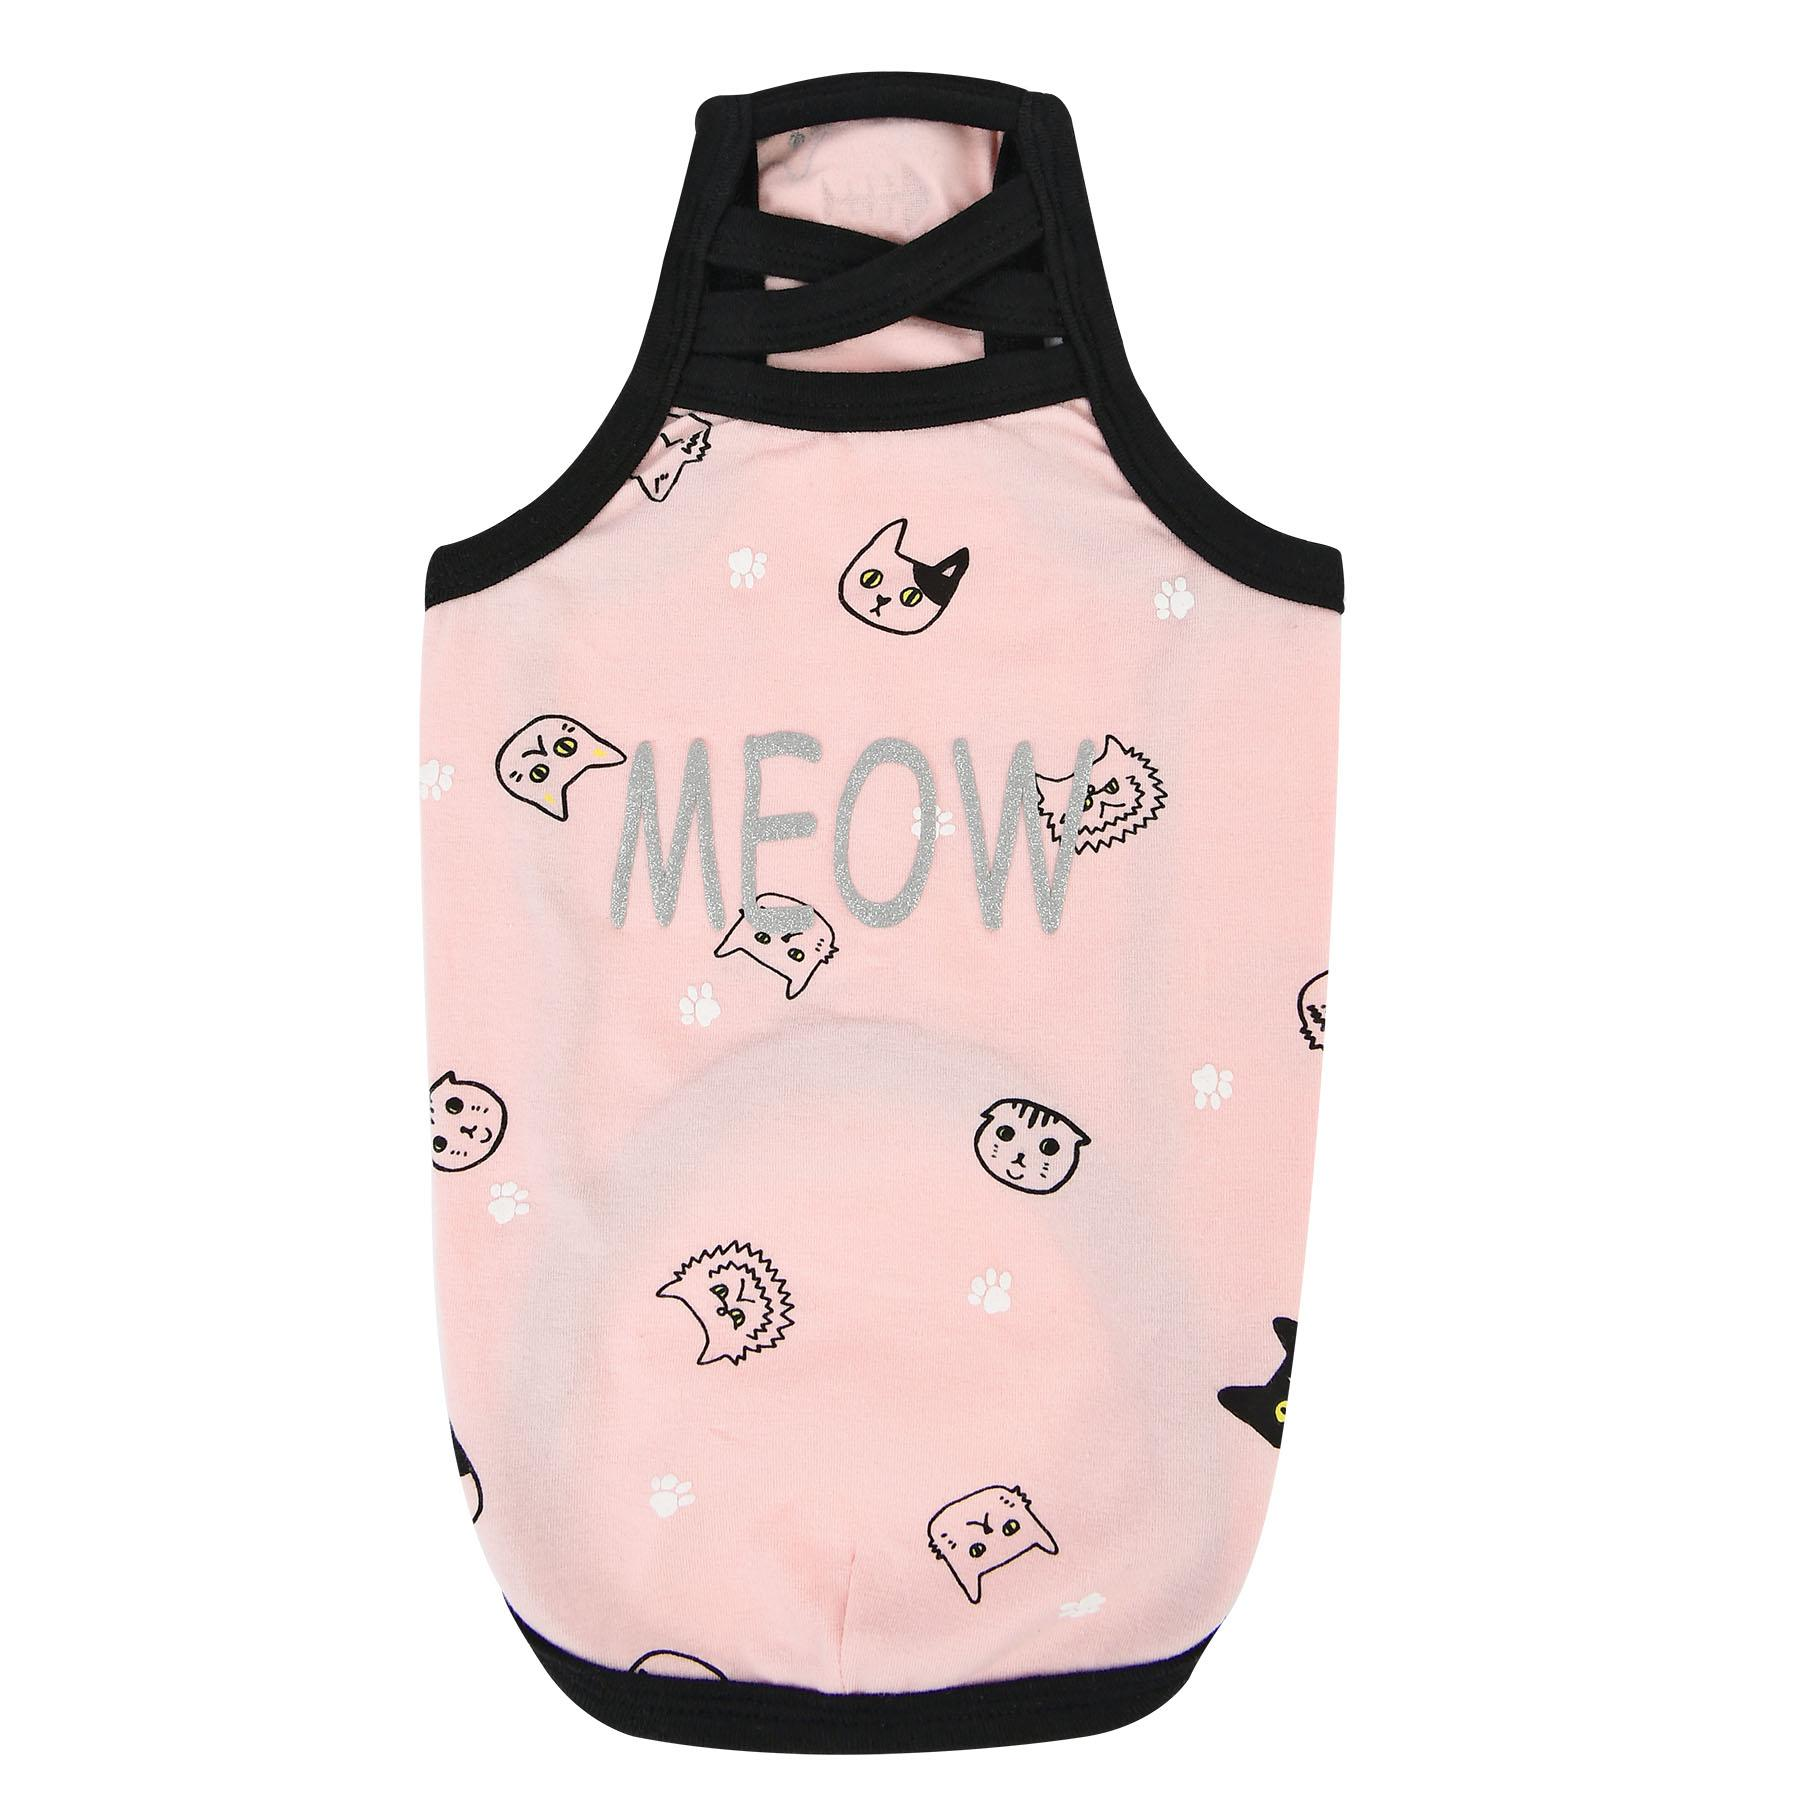 Mimi Cat Tank Top by Catspia - Pink